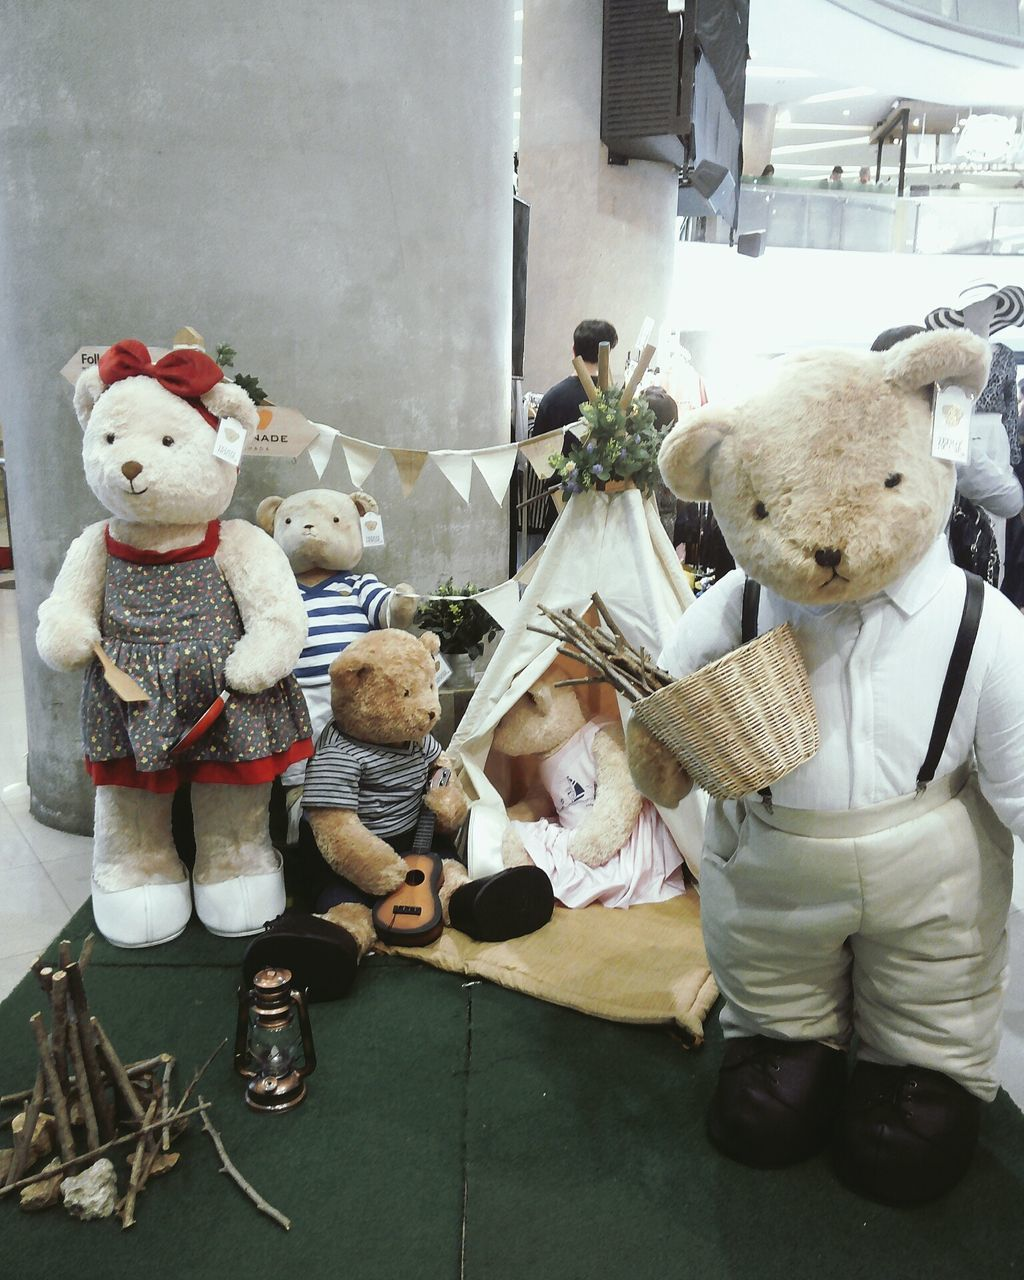 stuffed toy, teddy bear, toy, animal representation, childhood, no people, indoors, day, close-up